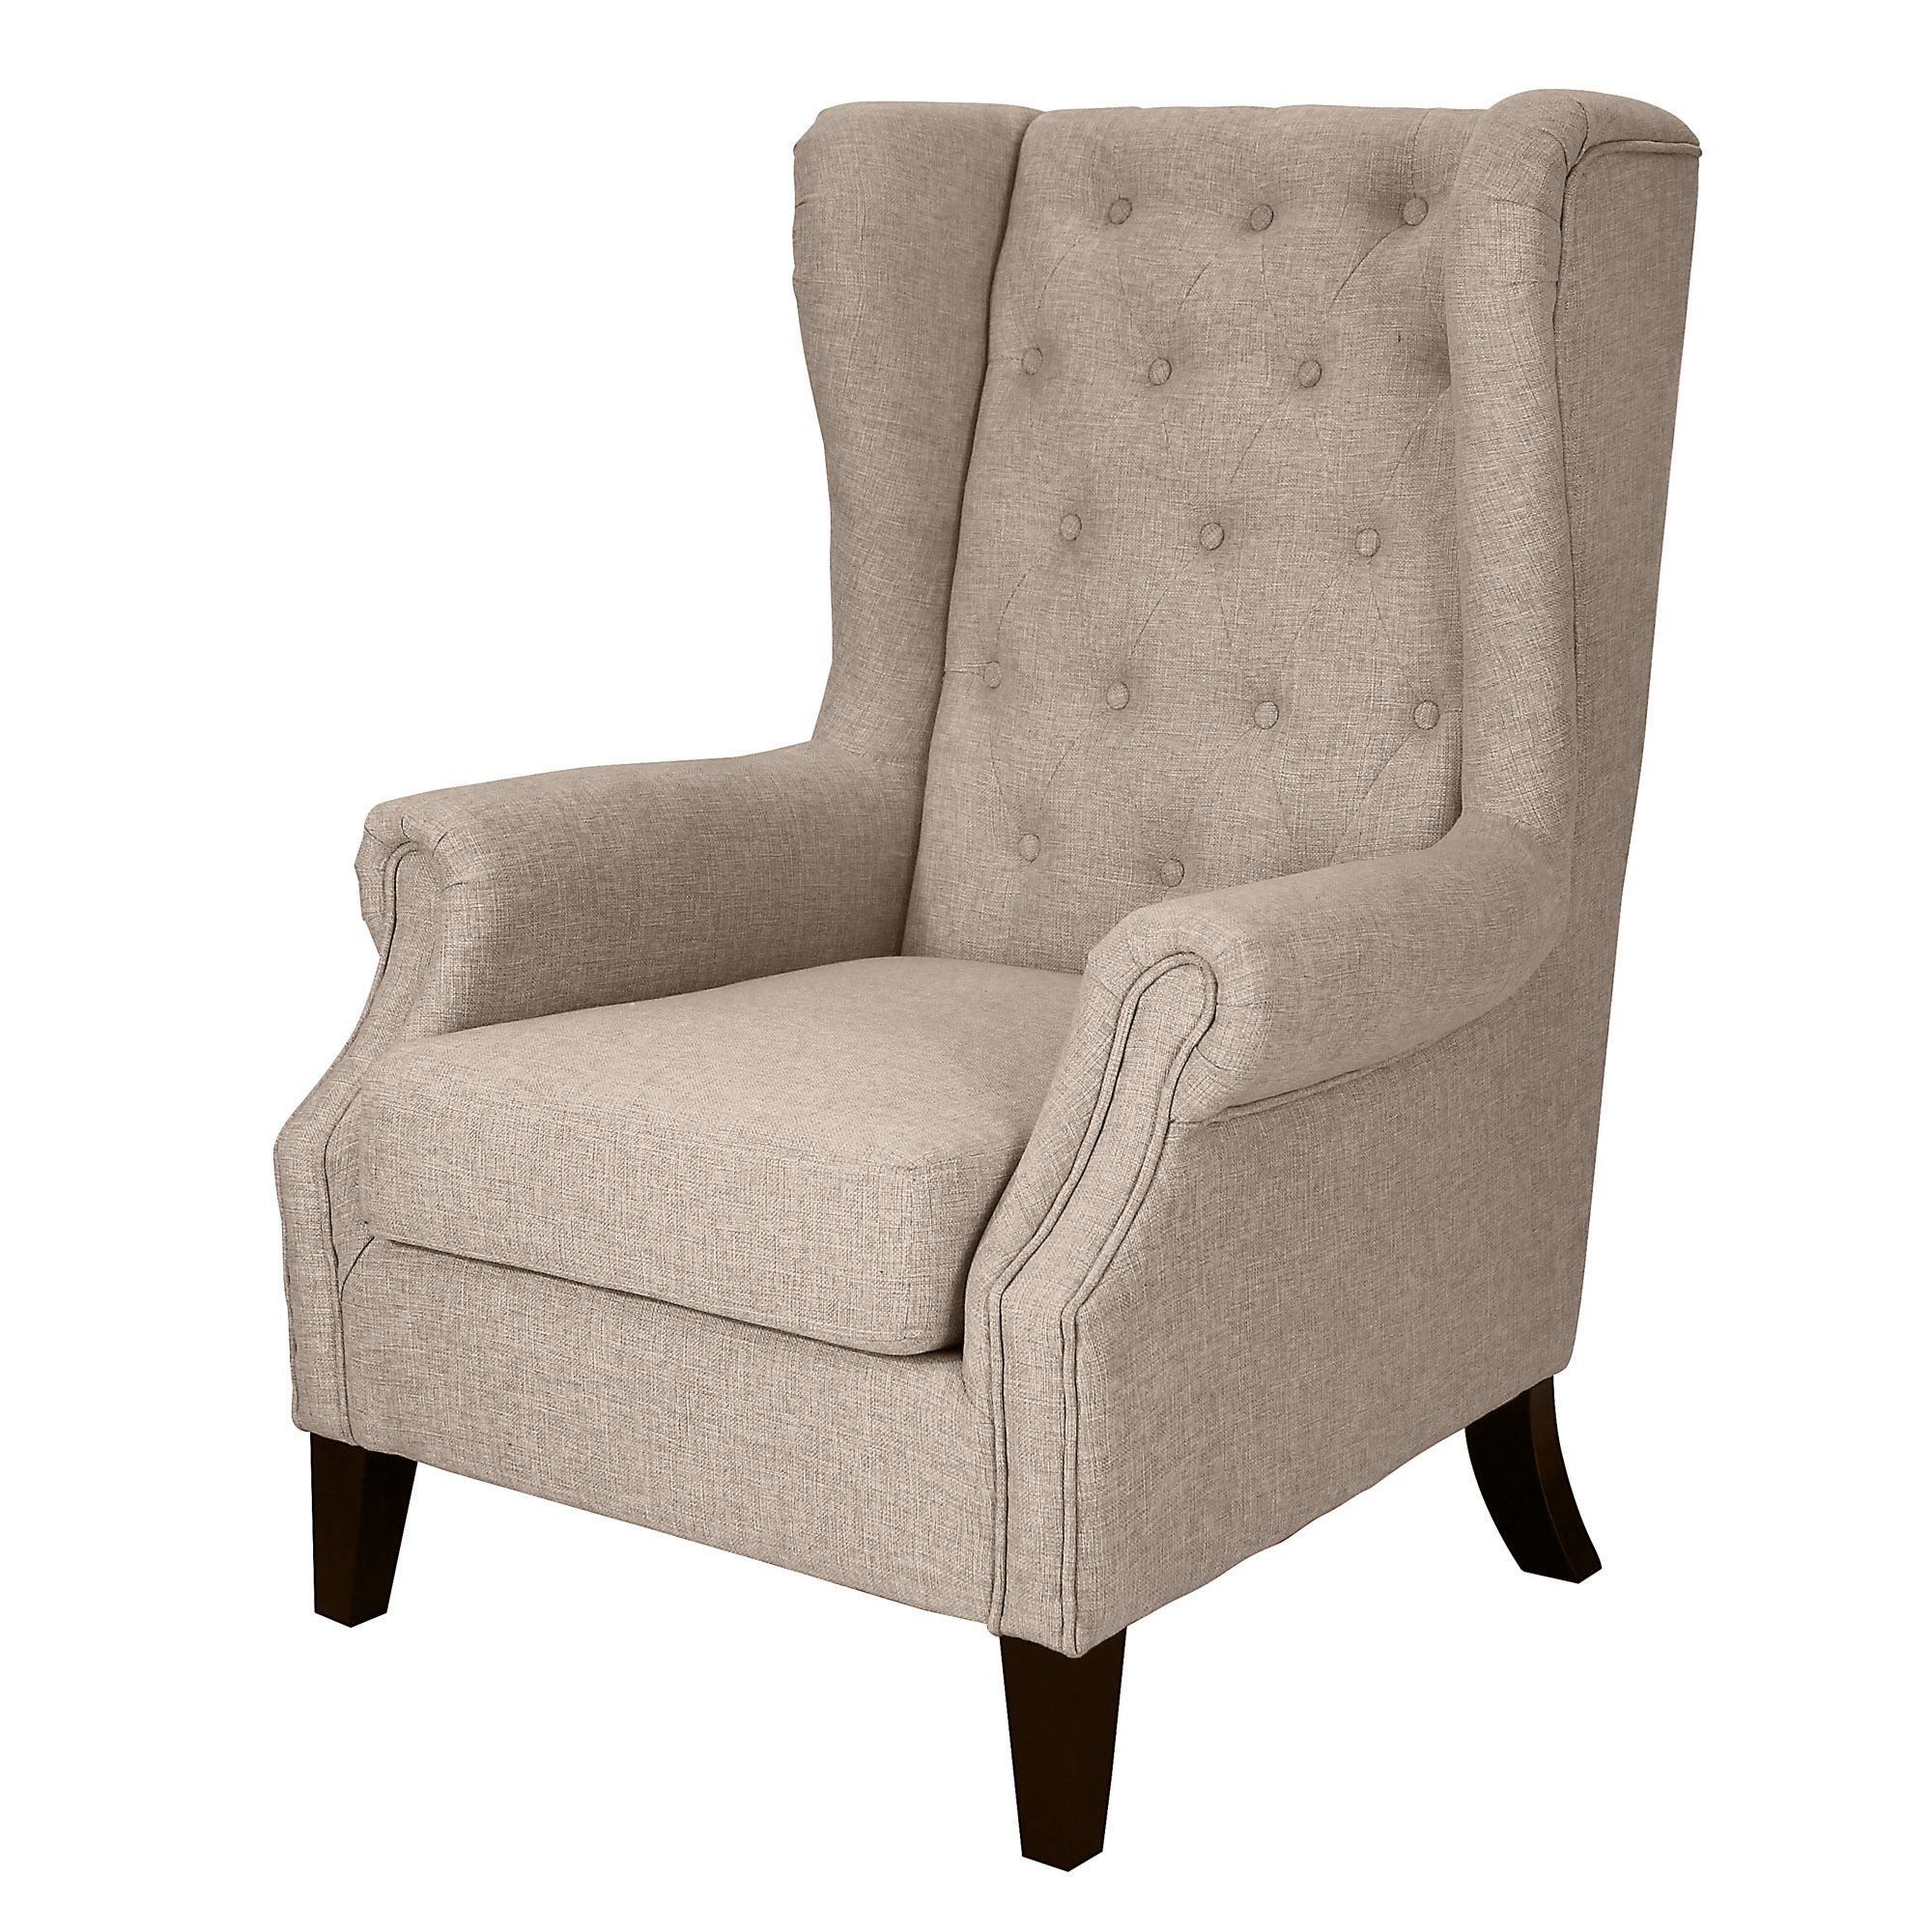 DonnieAnn Dorothy Tufted Upholstered Wingback Chair